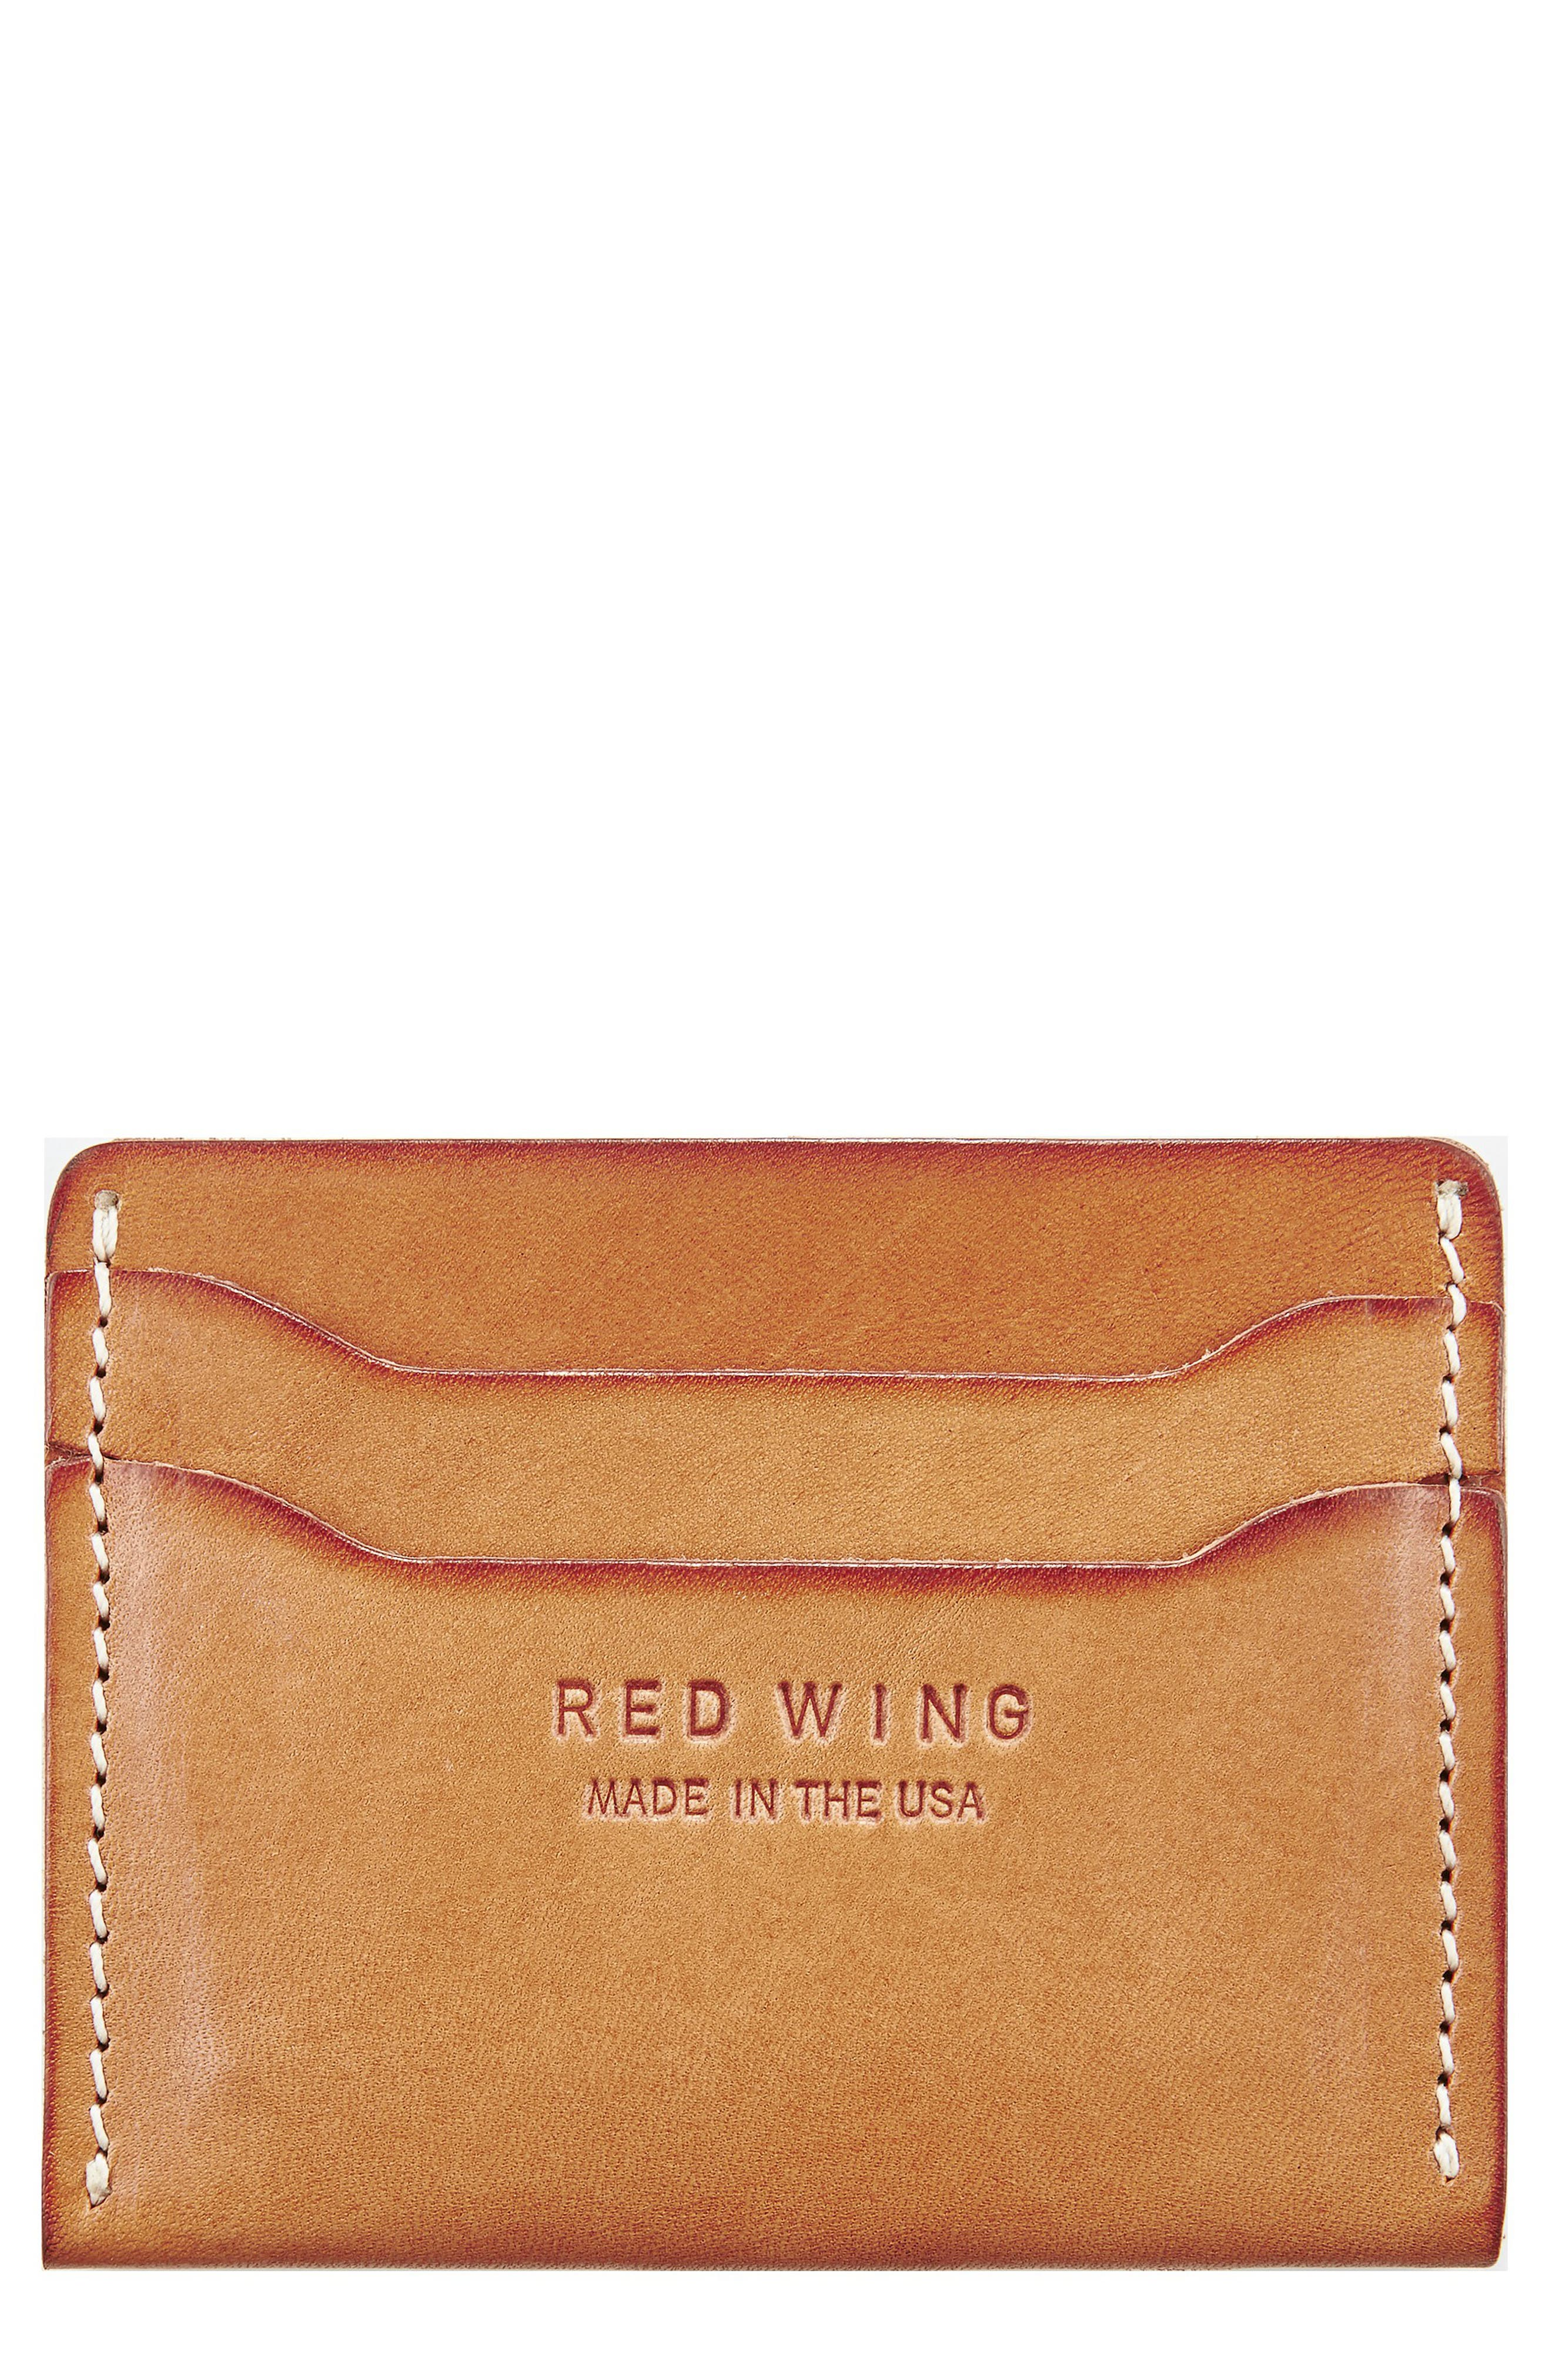 Leather Card Case,                             Main thumbnail 1, color,                             VEGETABLE- TANNED